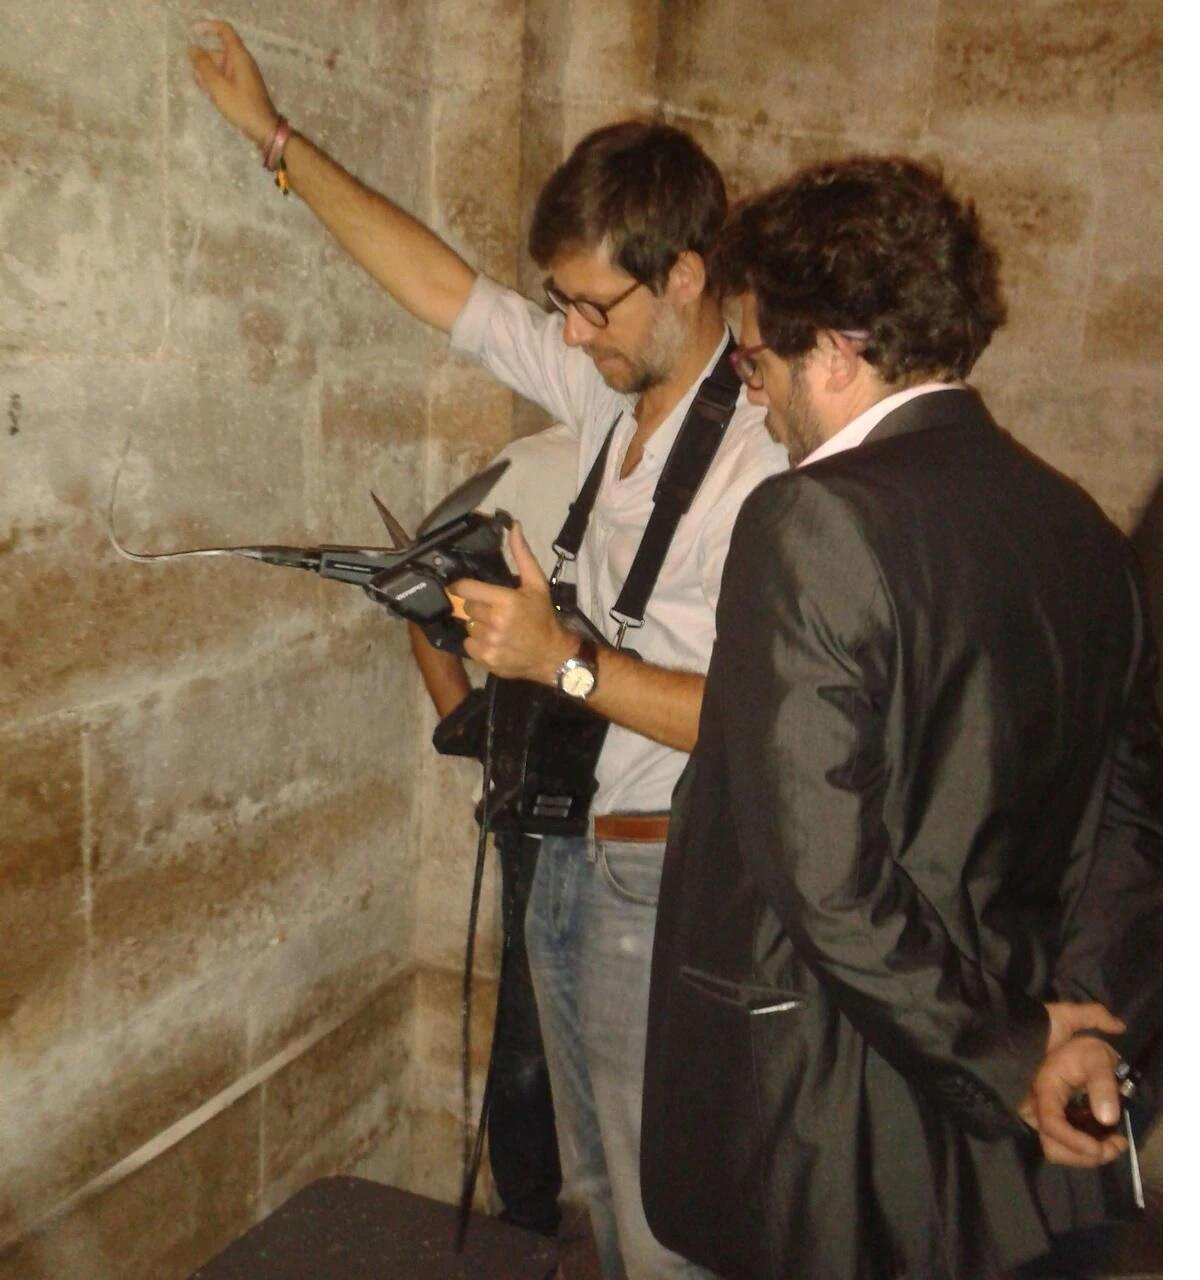 Philippe Charlier (left) discovered what are believed to be the bones of people guillotined during the Reign of Terror at the chapelle Expiatoire, built in memory of Louis XVI and Marie Antoinette.